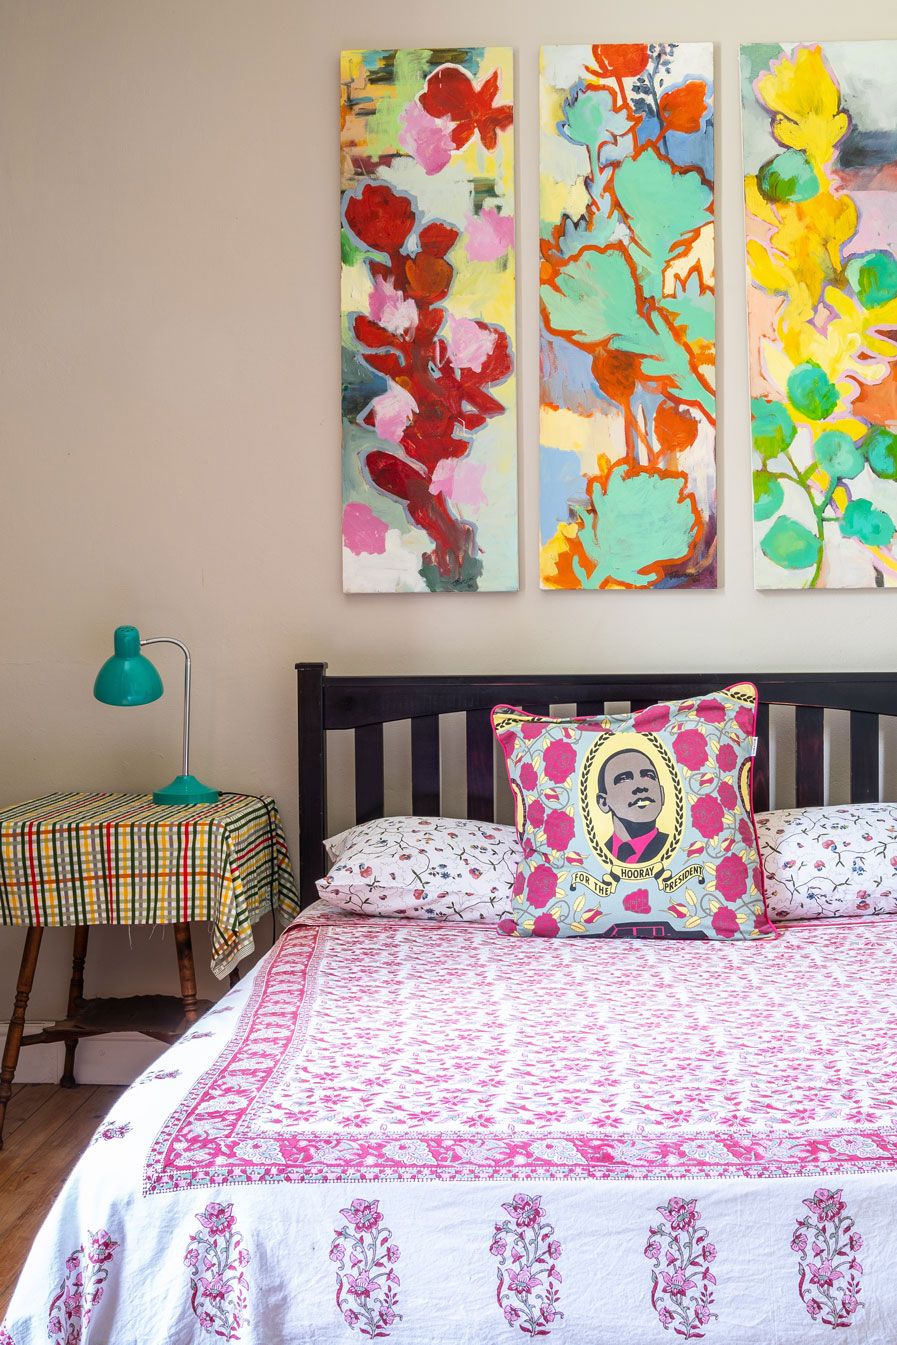 Colourful bedroom with a mix of bold patterns and graphic, illustrative fabrics